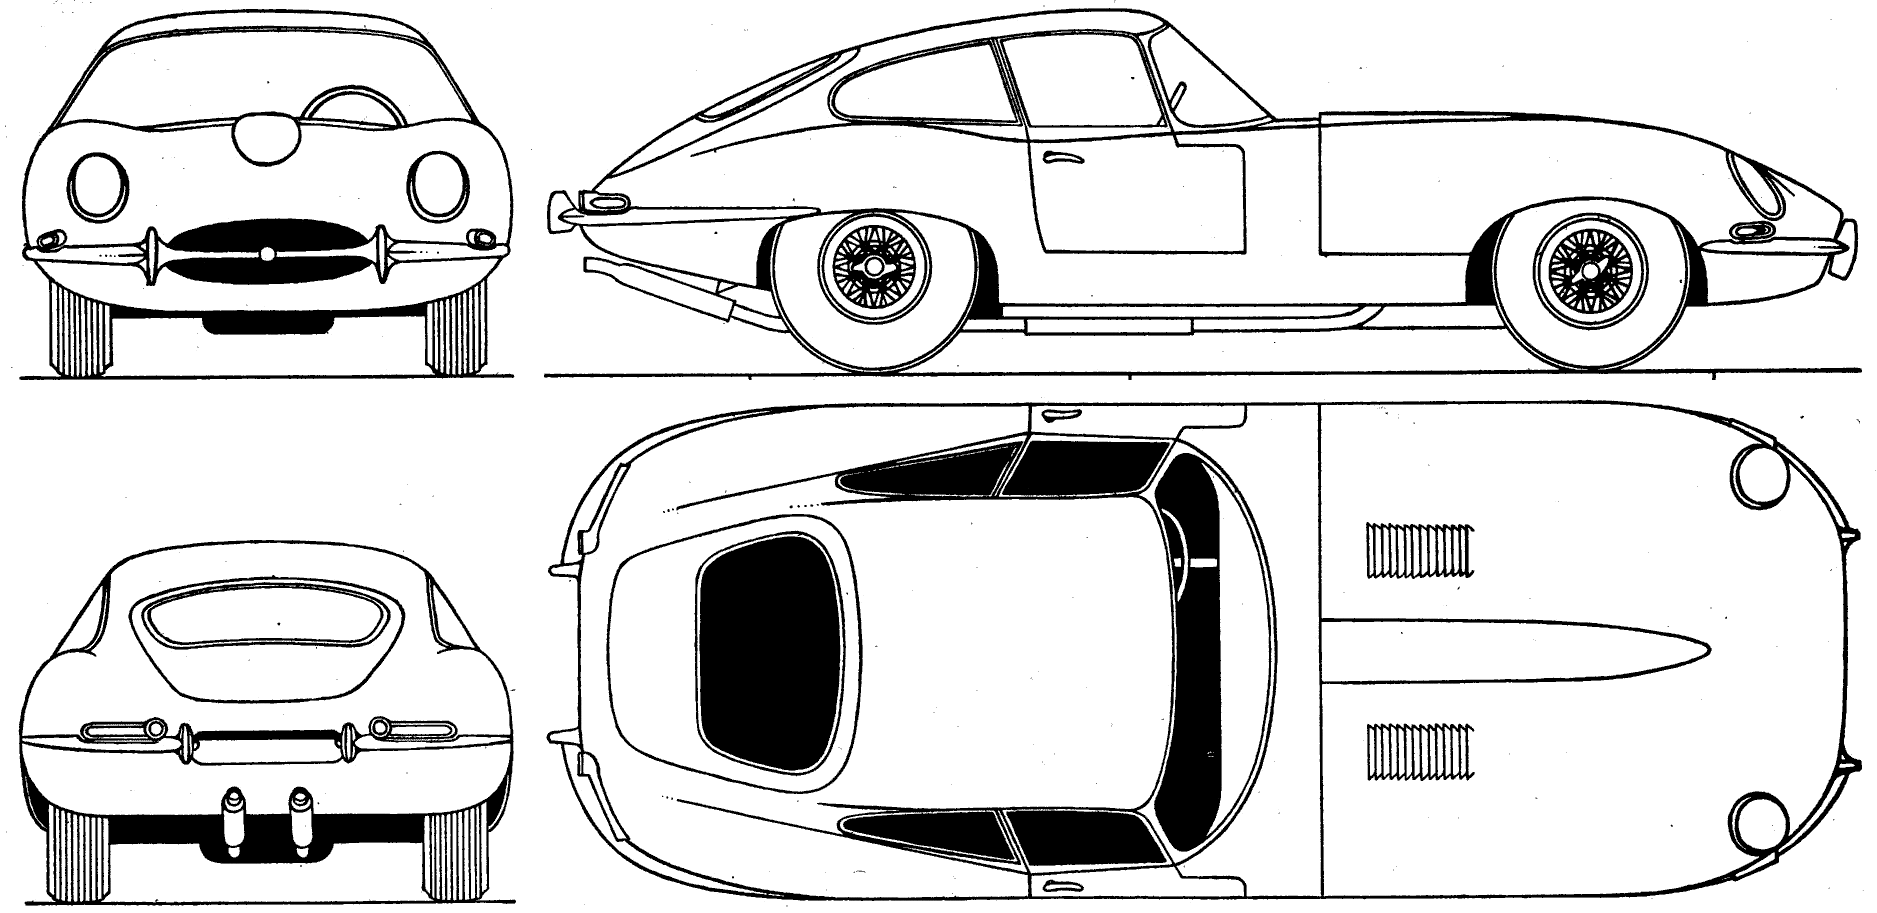 1961 jaguar e-type coupe blueprints free